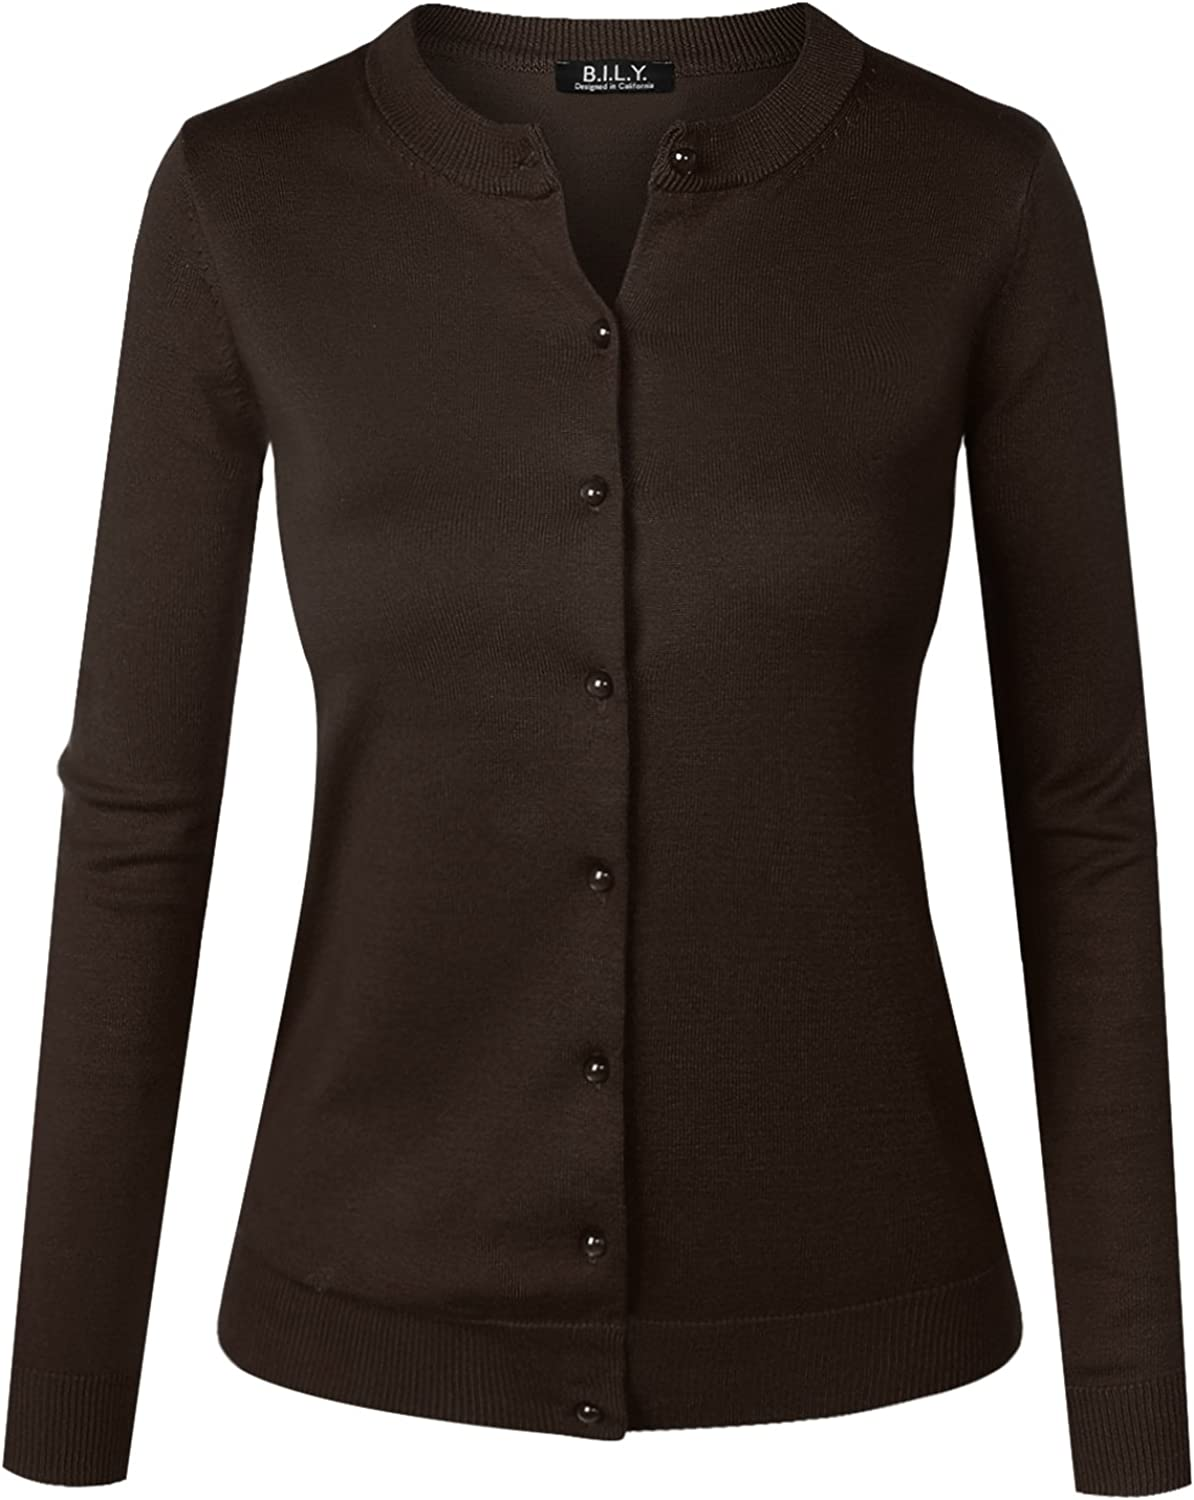 BH B.I.L.Y USA Women's Unique Button Long Sleeve Soft Knit Cardigan Sweater Brown 1XLarge